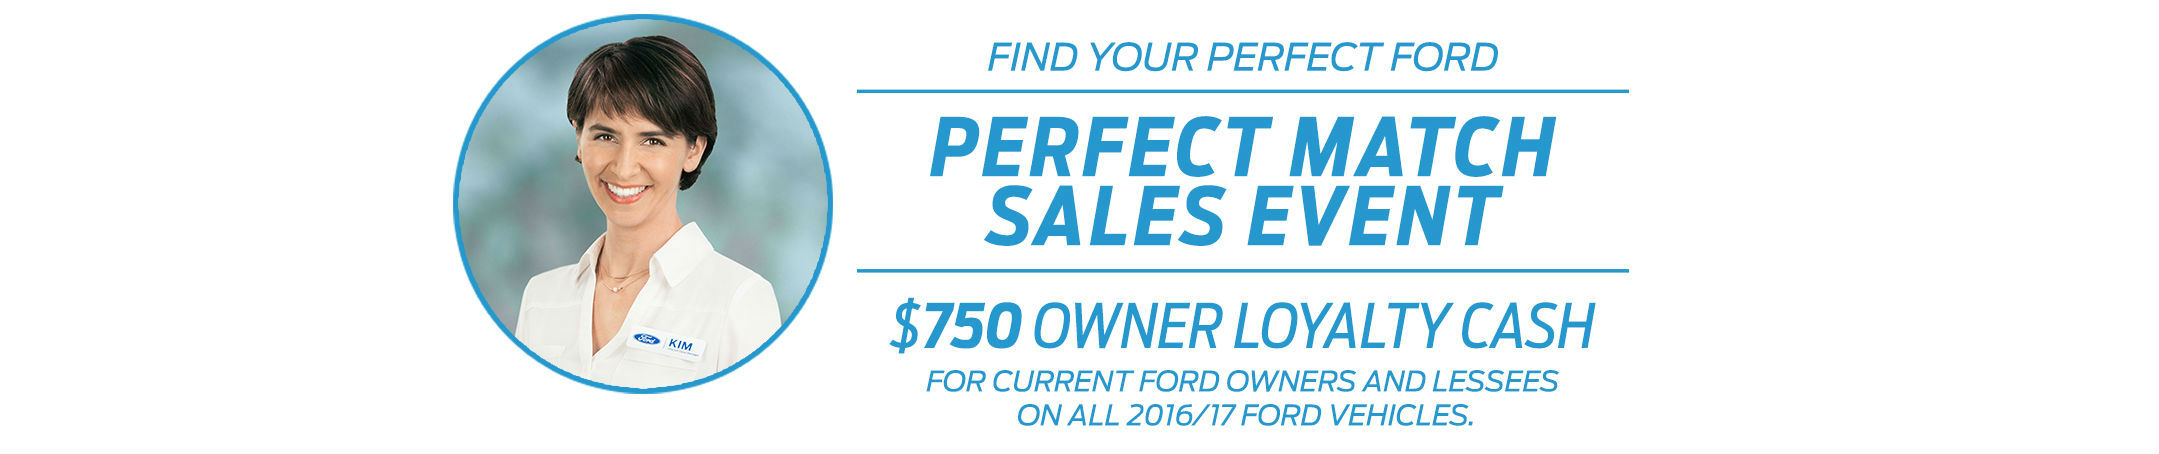 Ford Perfect Match Sales Event